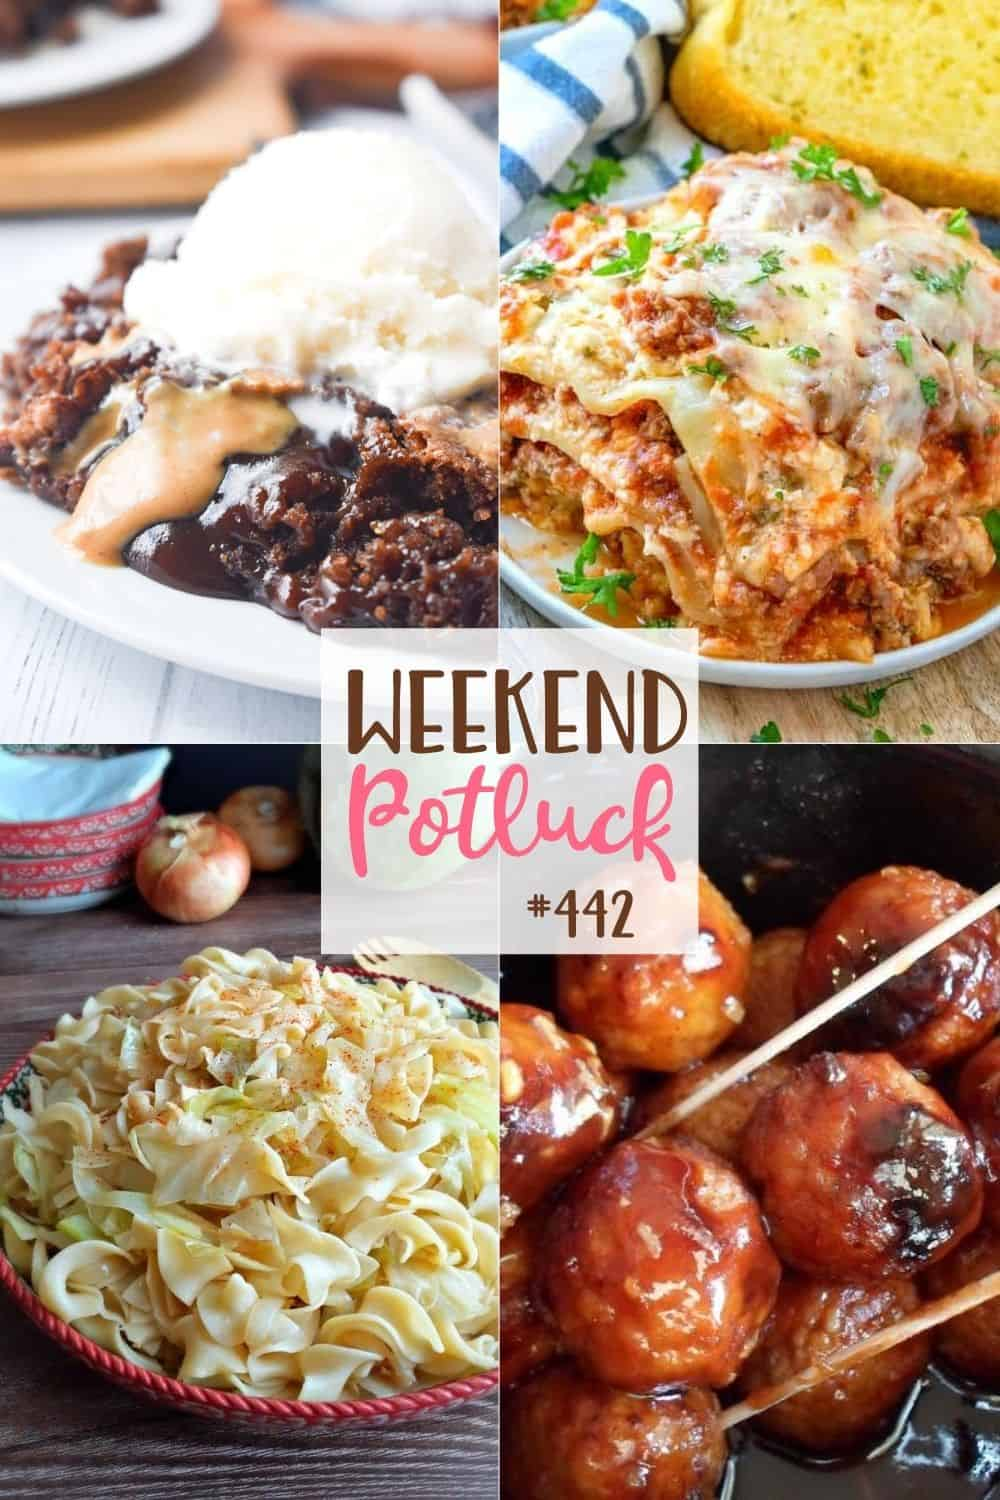 Weekend Potluck featured recipes include: Fried Cabbage & Noodles, Crock Pot Honey Garlic Meatballs, Chocolate Peanut Butter Cobbler and The Best Crock Pot Lasagna